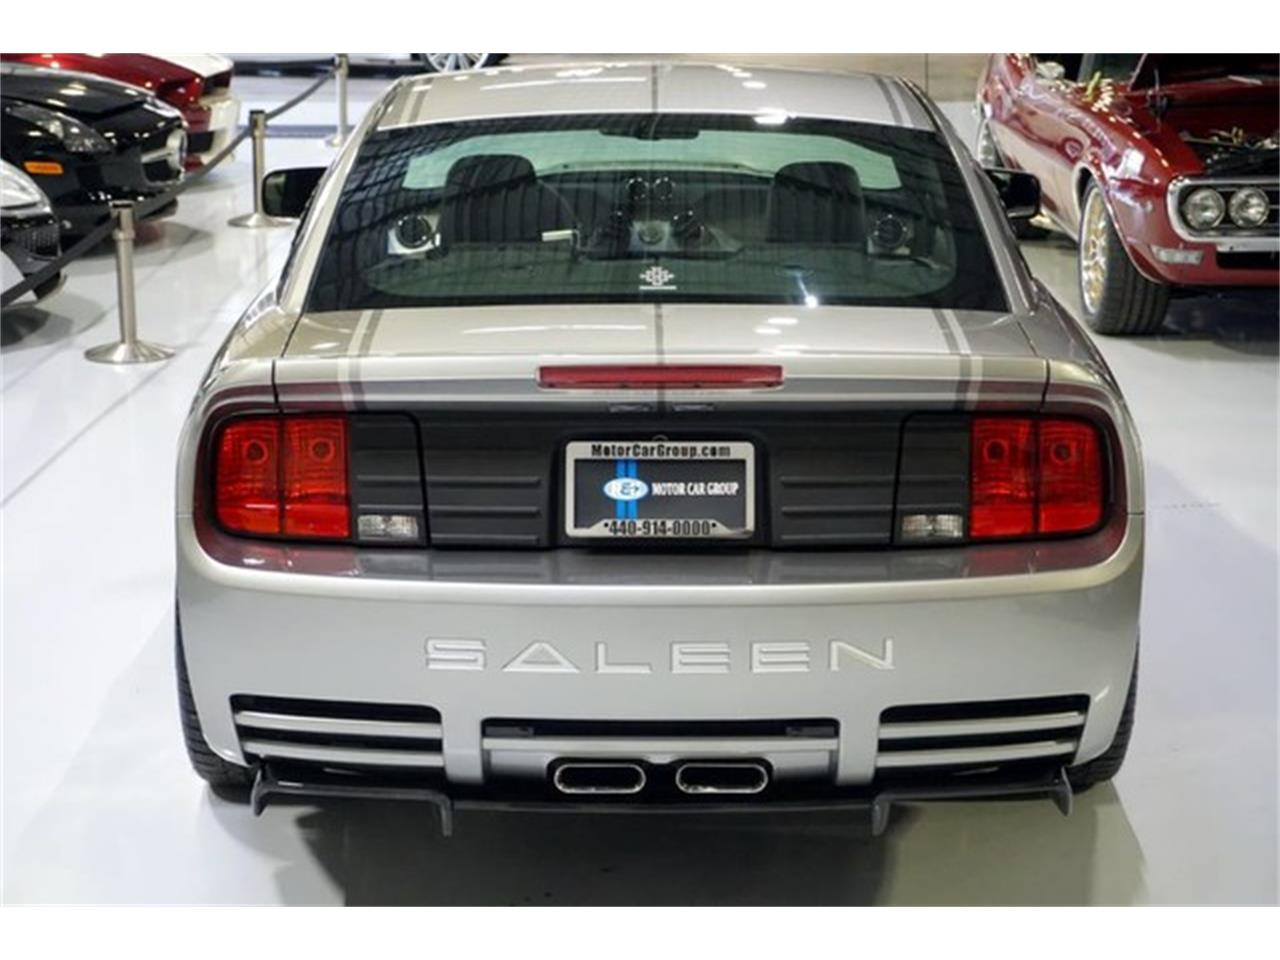 2008 Ford Mustang Saleen S302e Sterling For Sale Classiccars Com